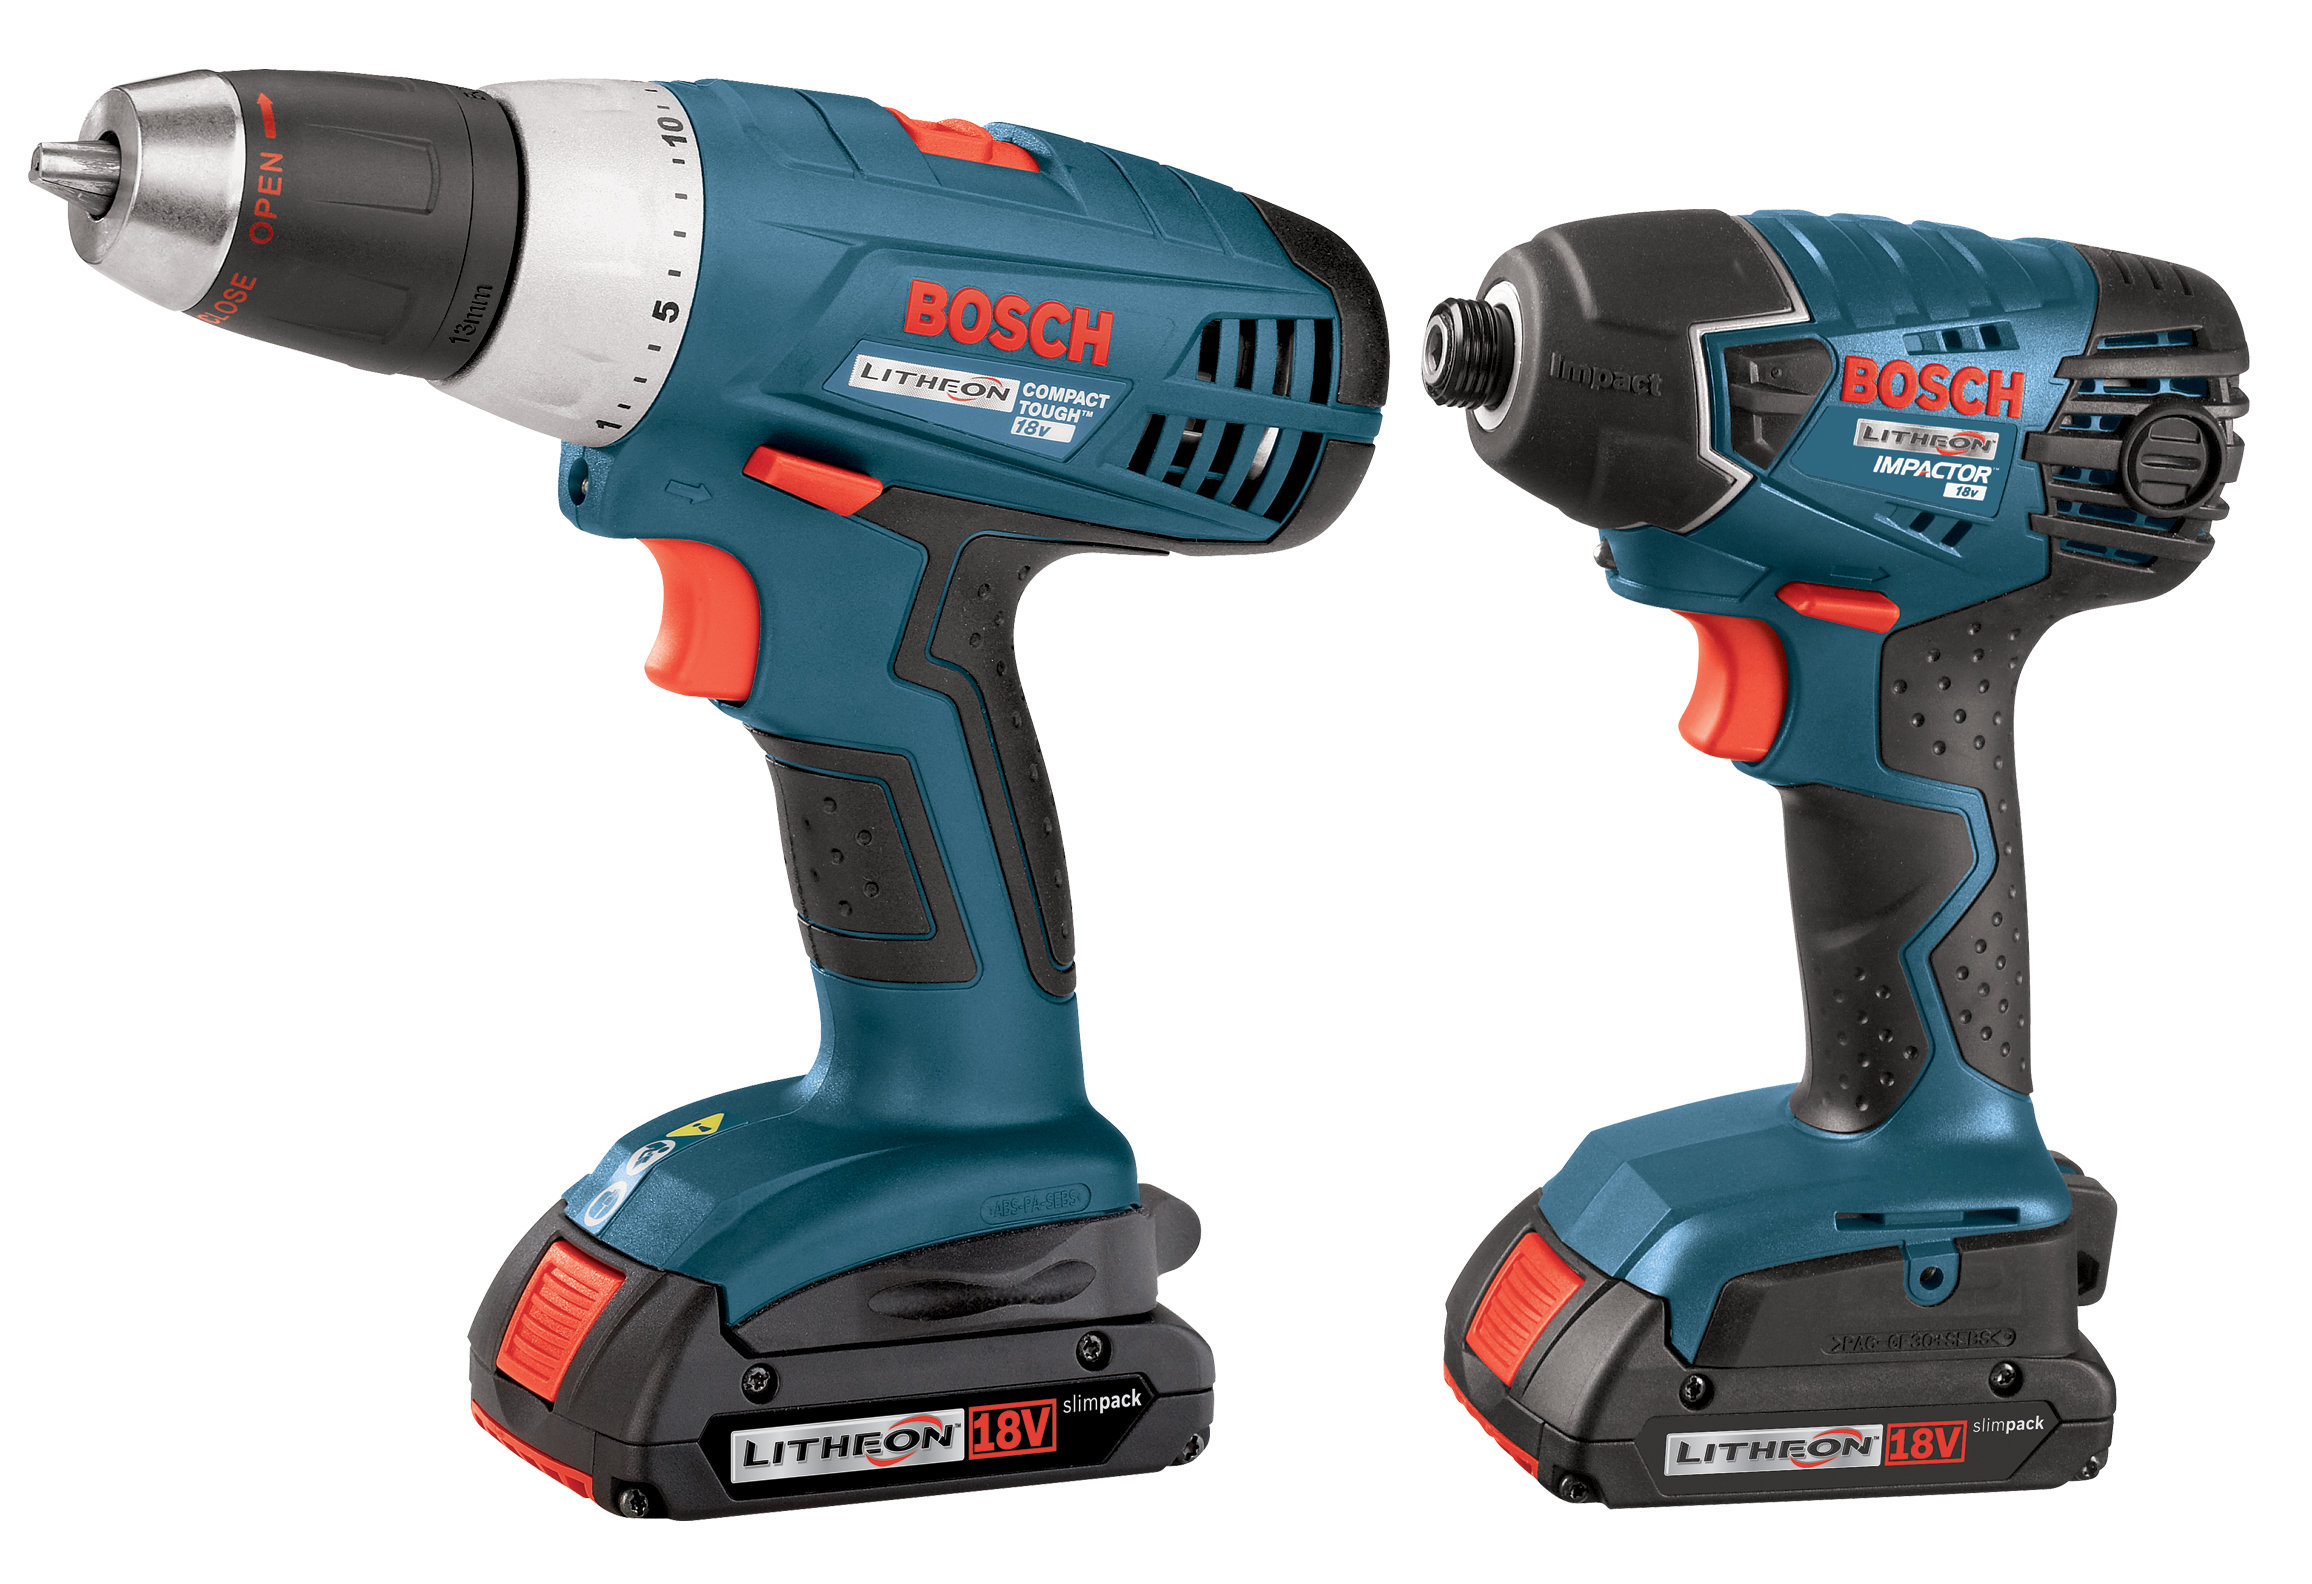 bosch clpk23 180 18 volt 2 tool lithium ion combo kit power tool combo packs. Black Bedroom Furniture Sets. Home Design Ideas